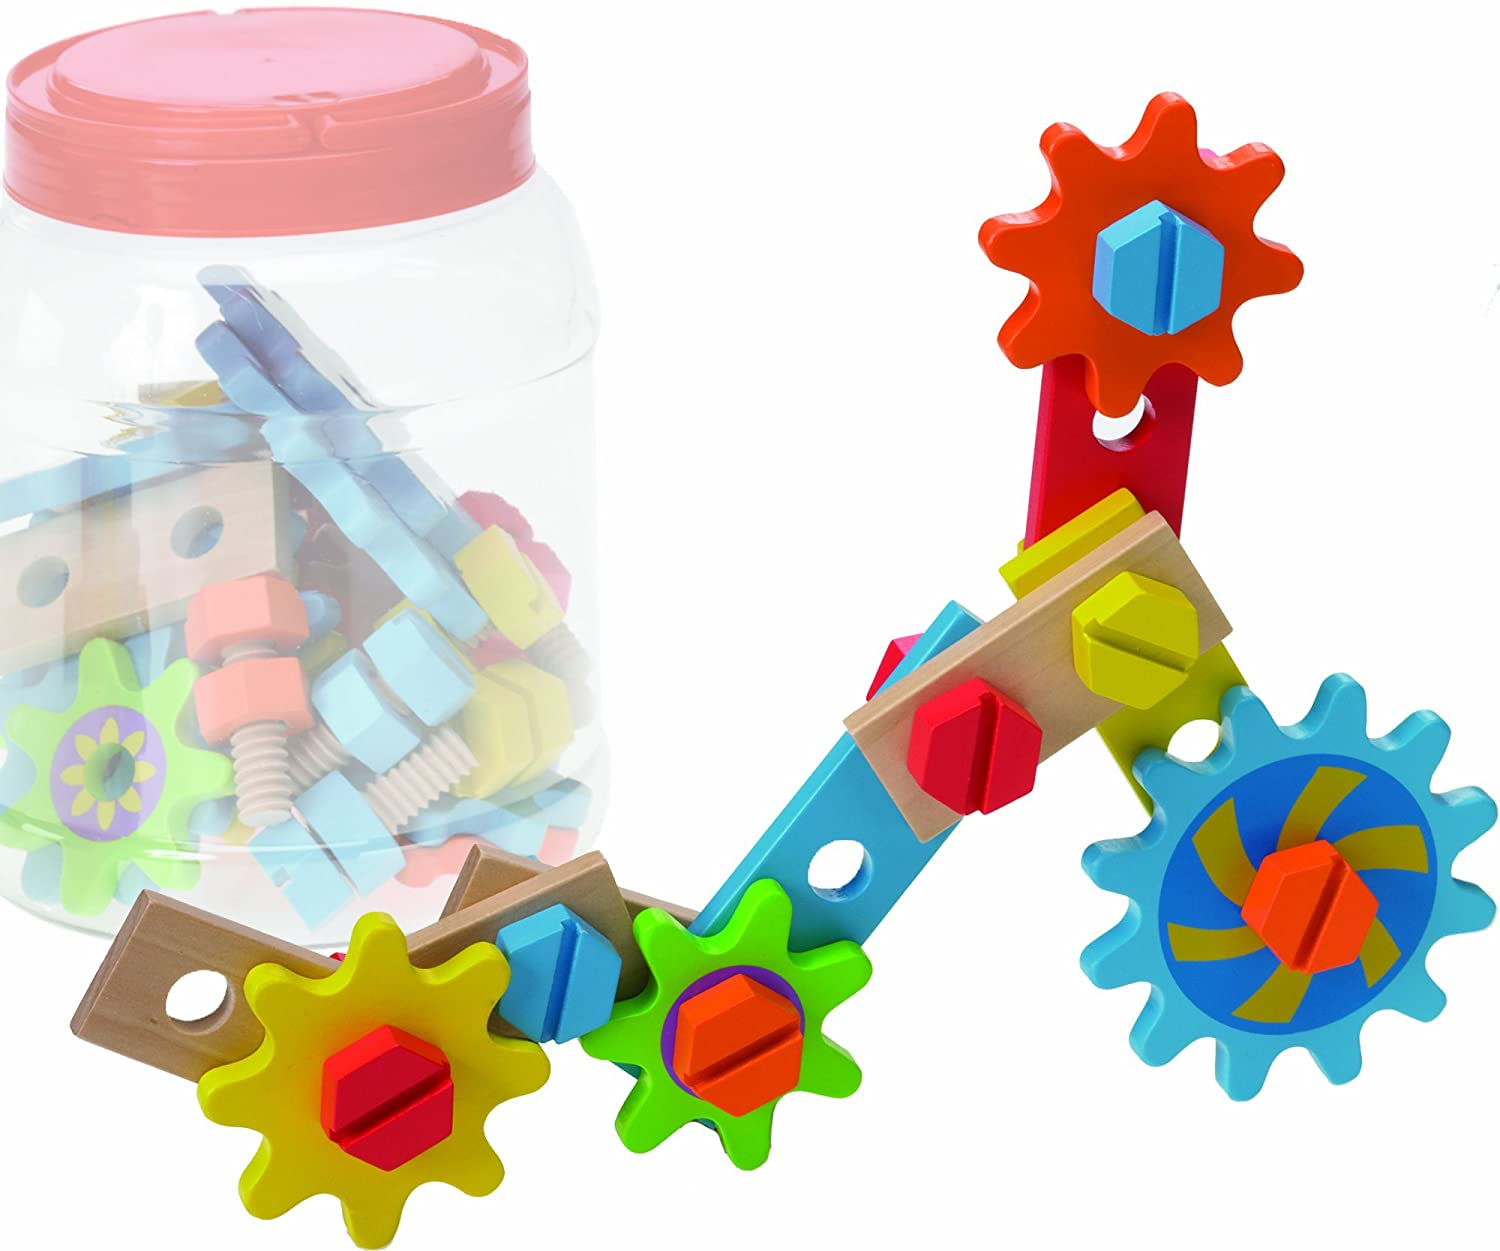 Amazon.com: The Original Toy Company Wooden Gears and Bolts with ...